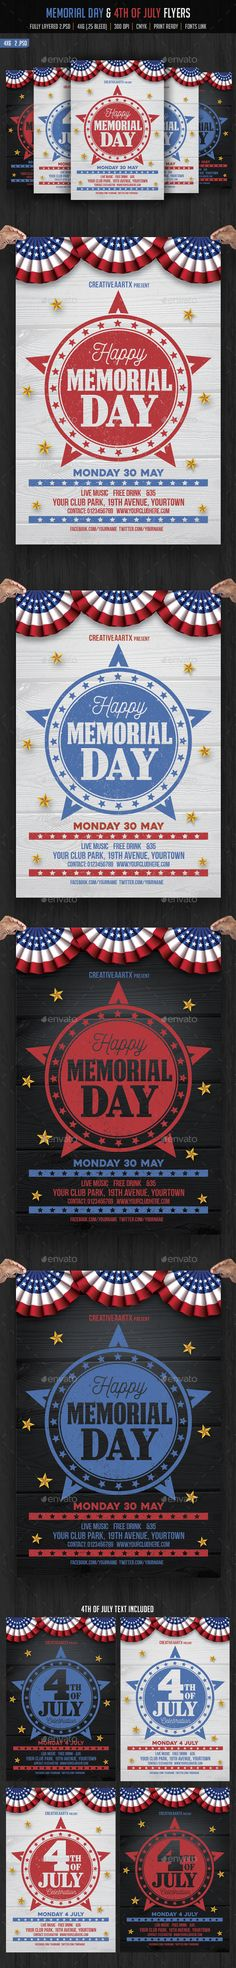 memorial day parade flyer